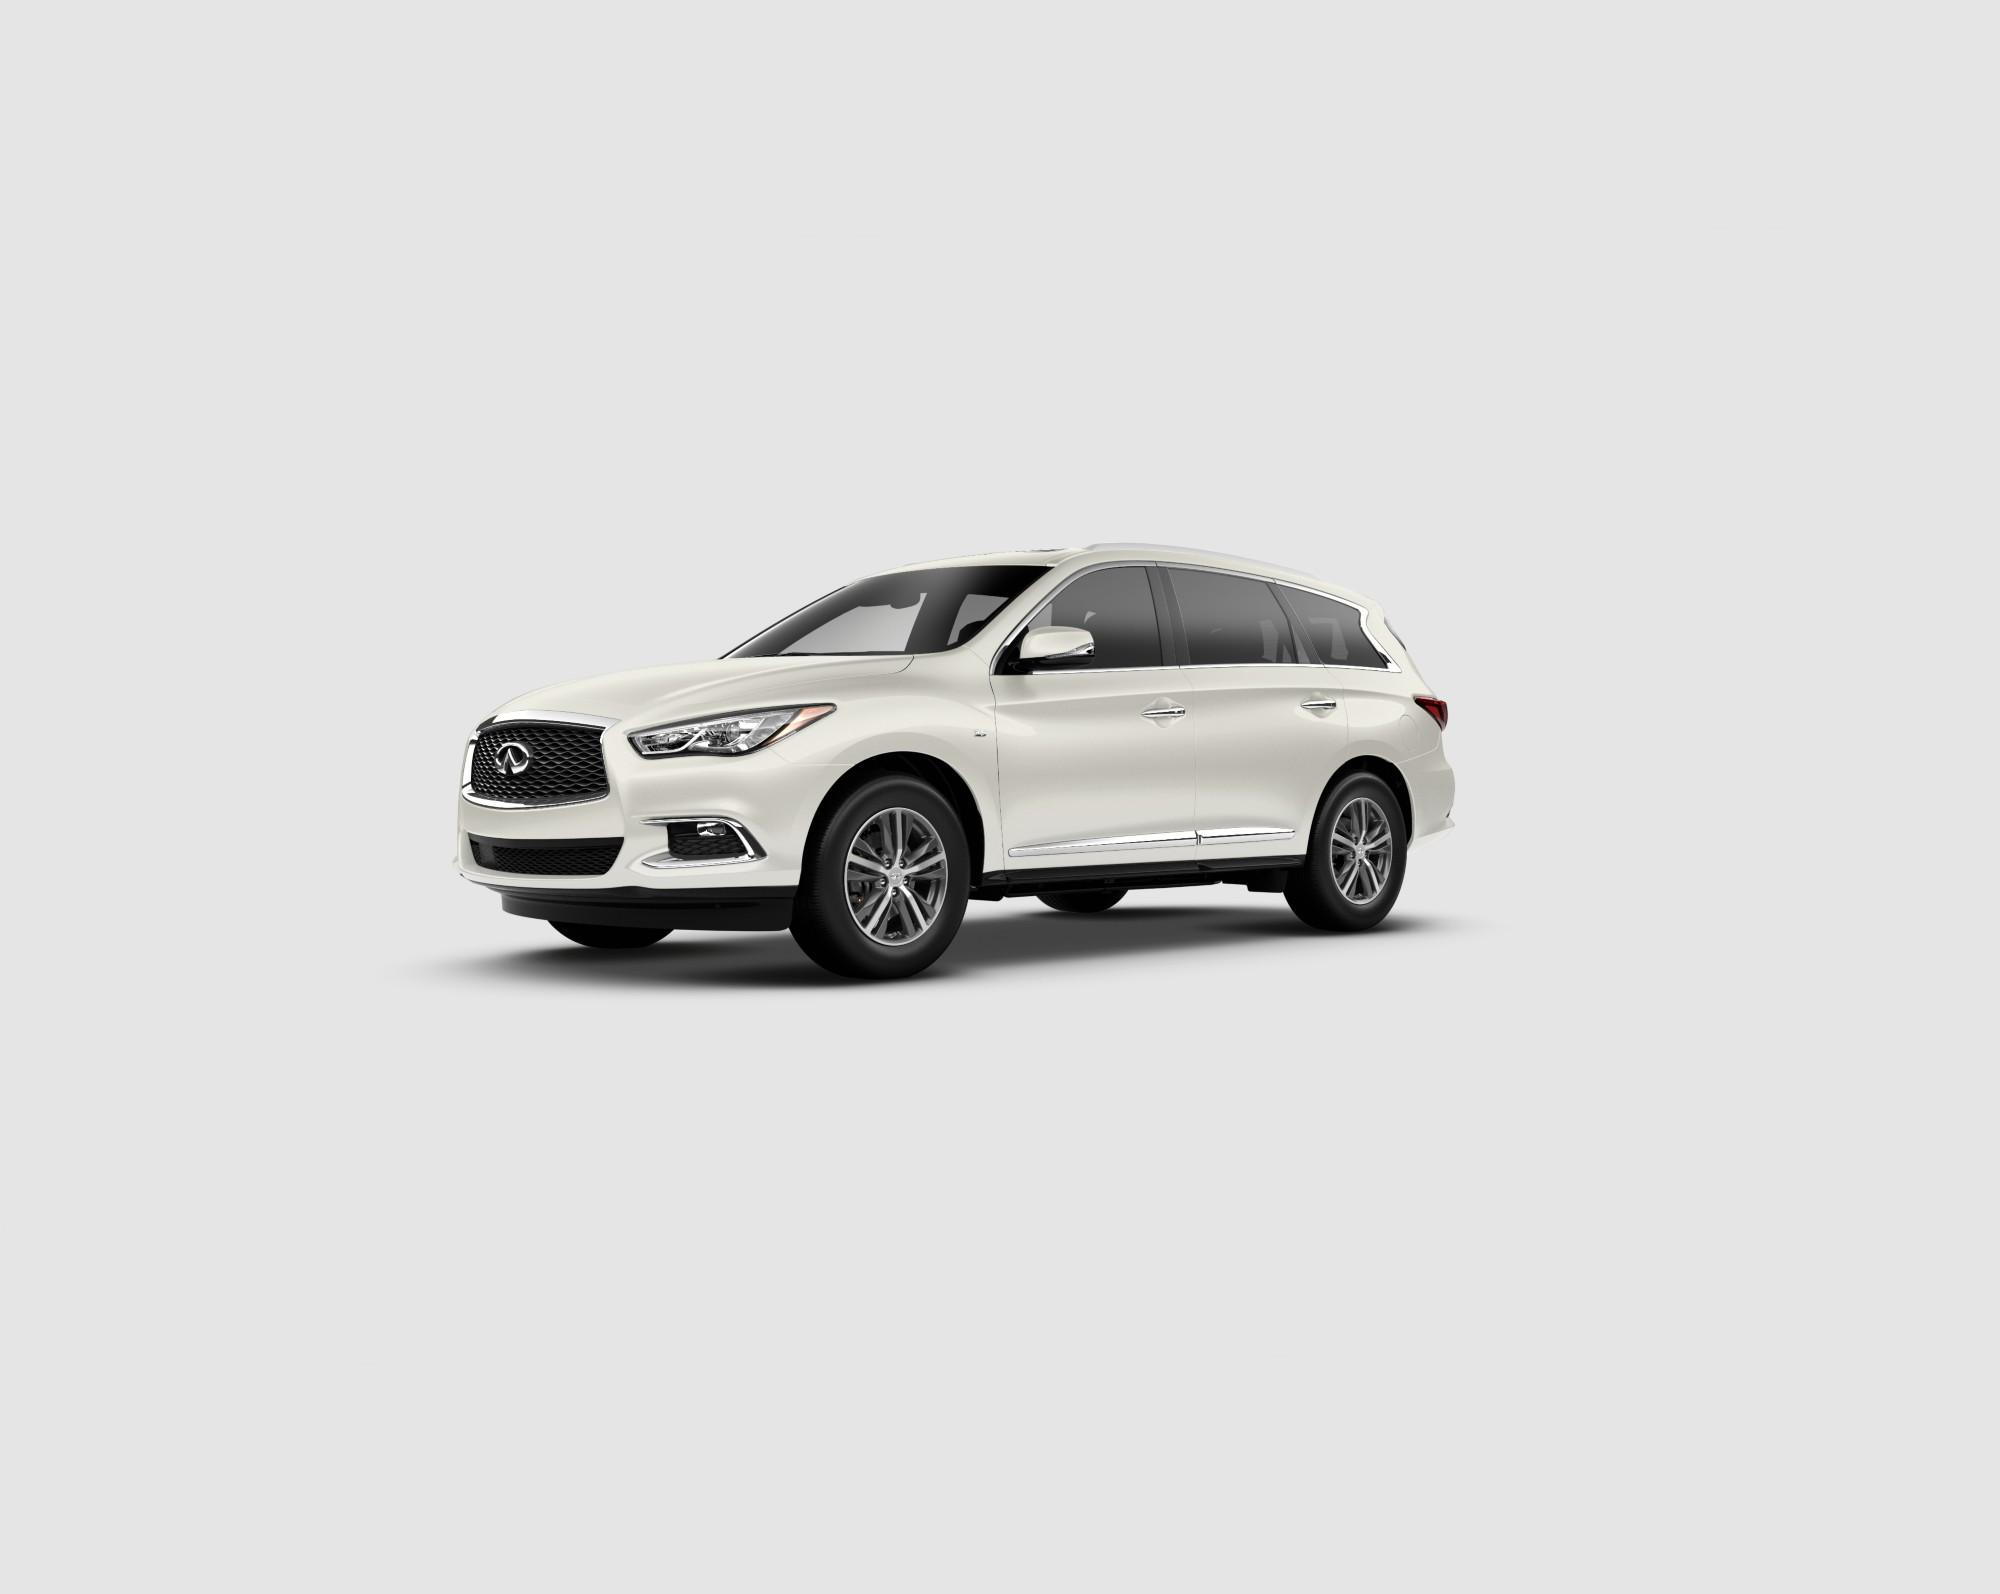 2019 INFINITI QX60 Vehicle Photo in Fort Worth, TX 76132